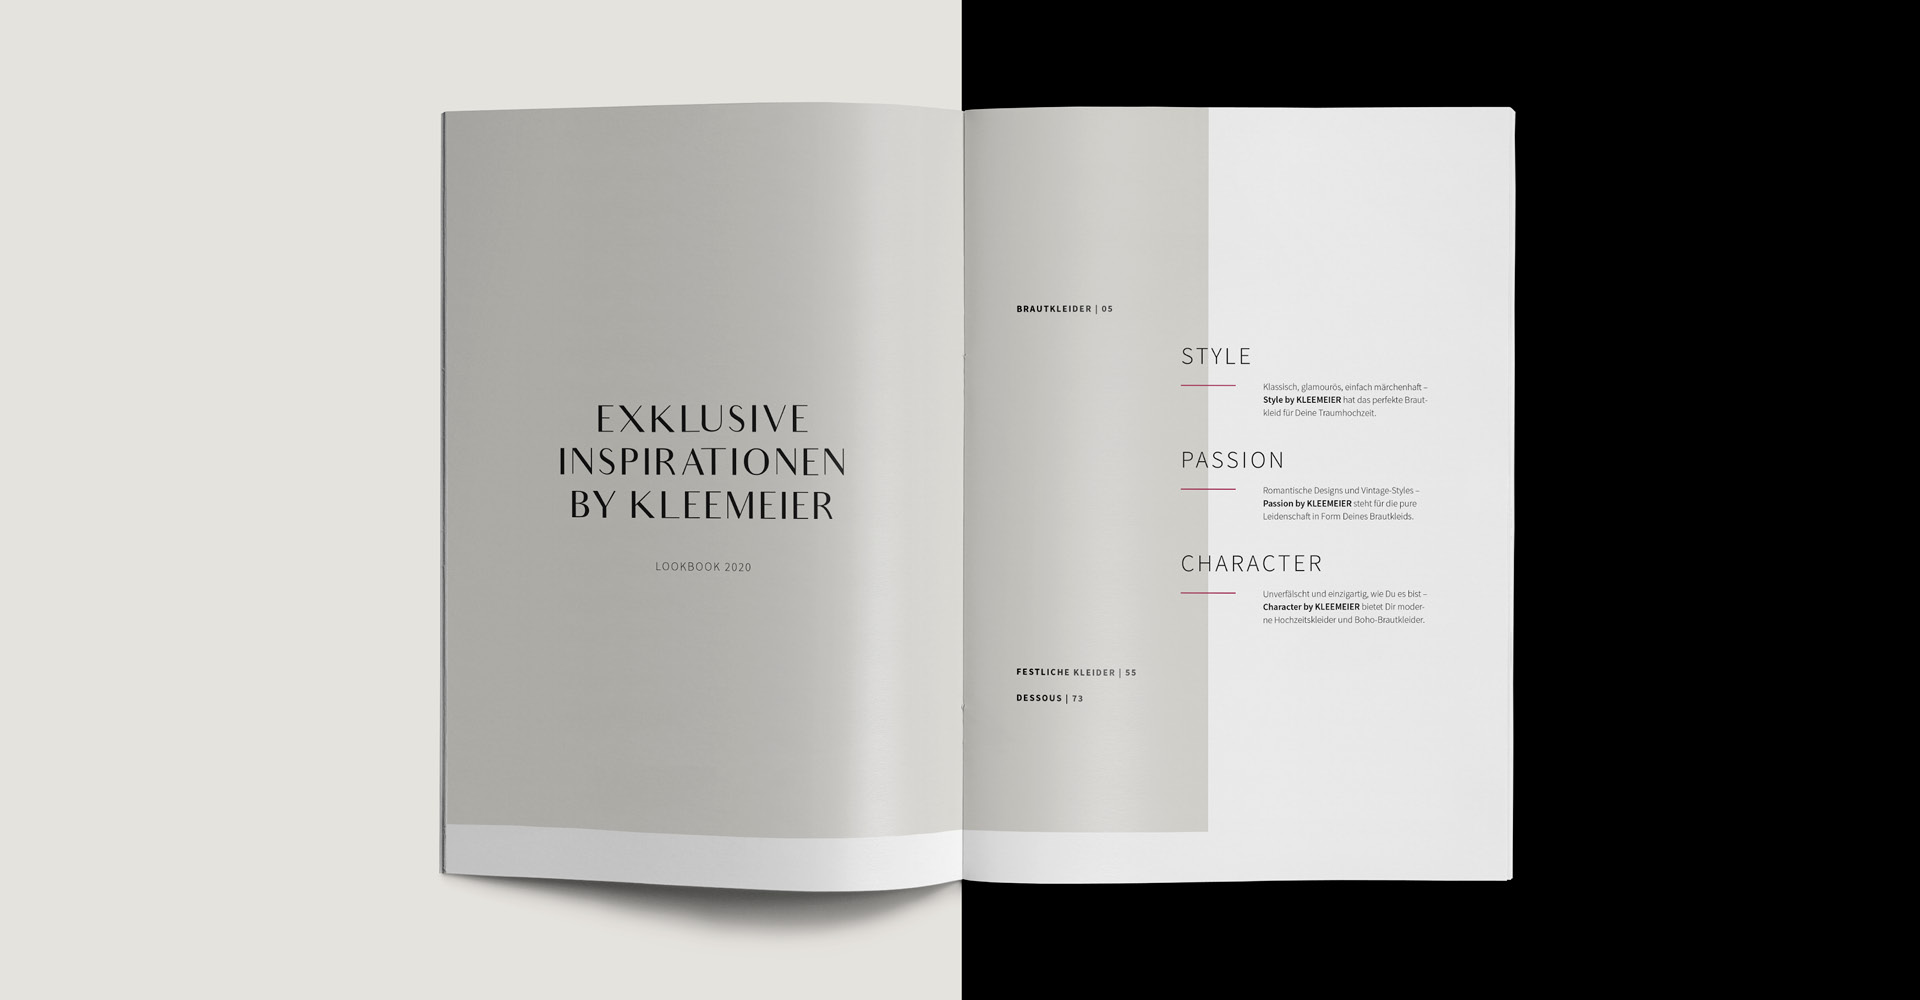 OPUS Marketing / Projekt / KLEEMEIER / Lookbook / Inhaltsverzeichnis